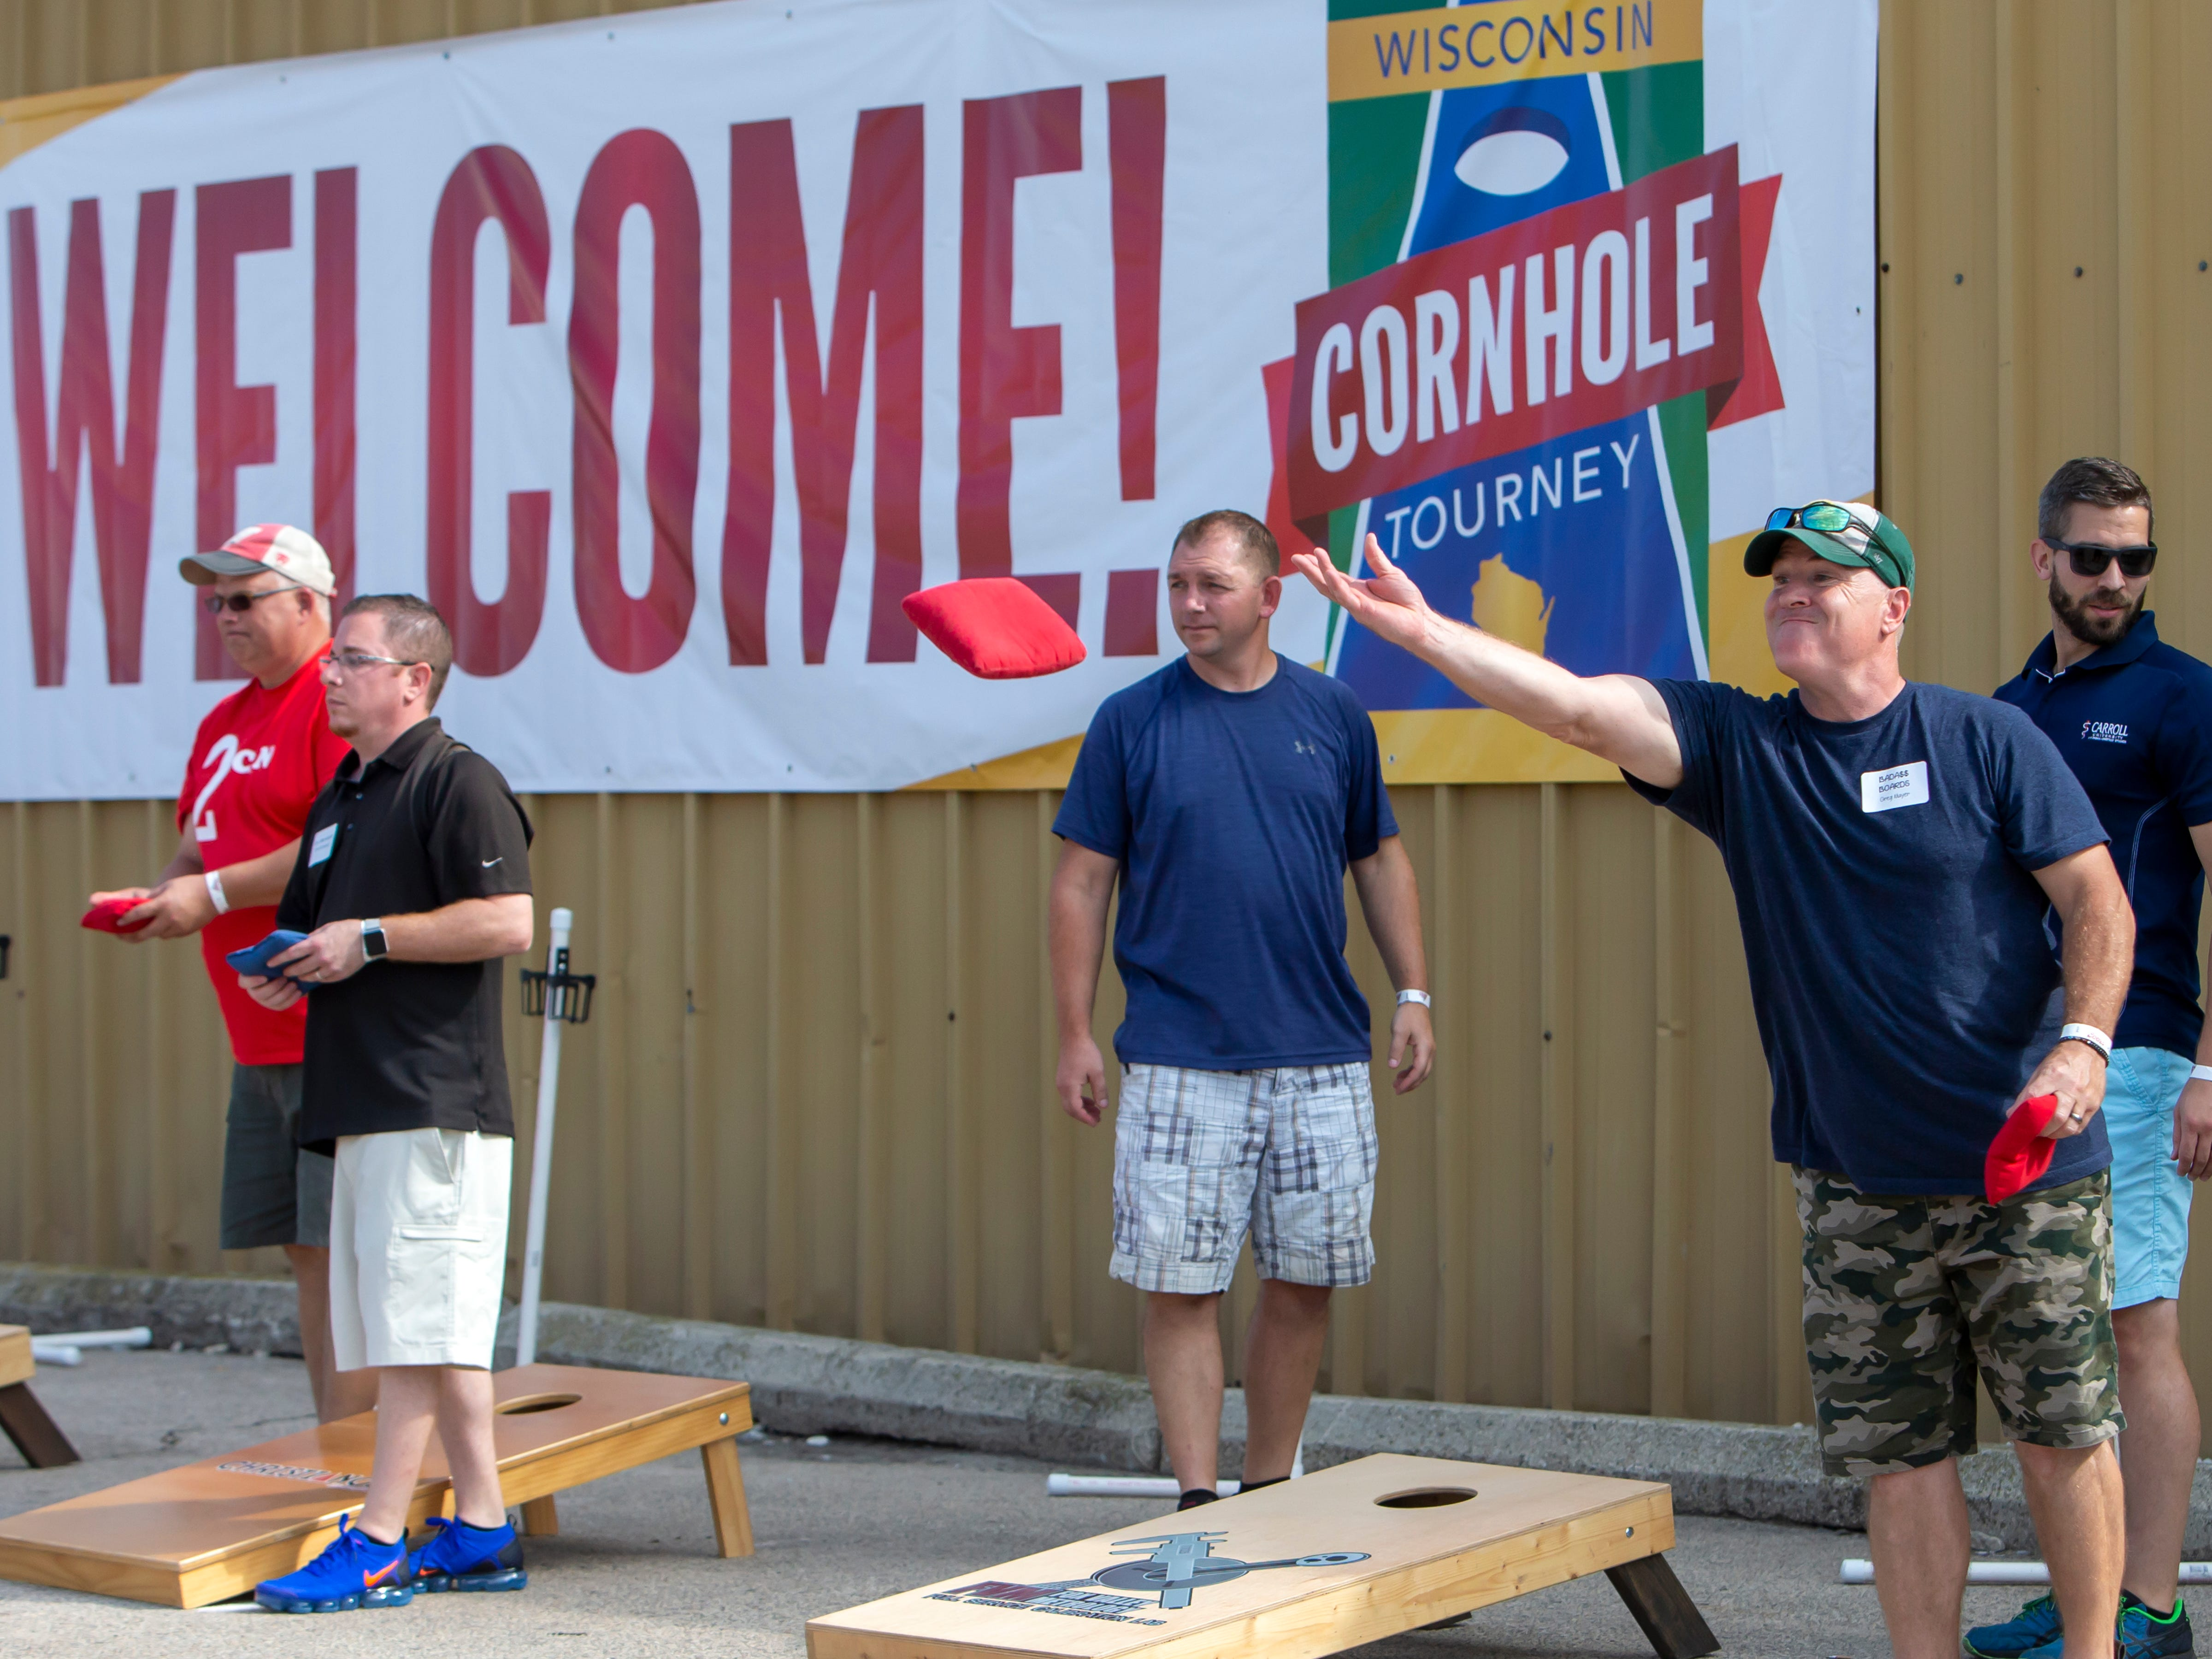 Greg Mayer tosses a red bean bag competing in the Wisconsin Cornhole Tourney at Dockside Tavern in Oshkosh on Saturday, Sept. 15, 2018.